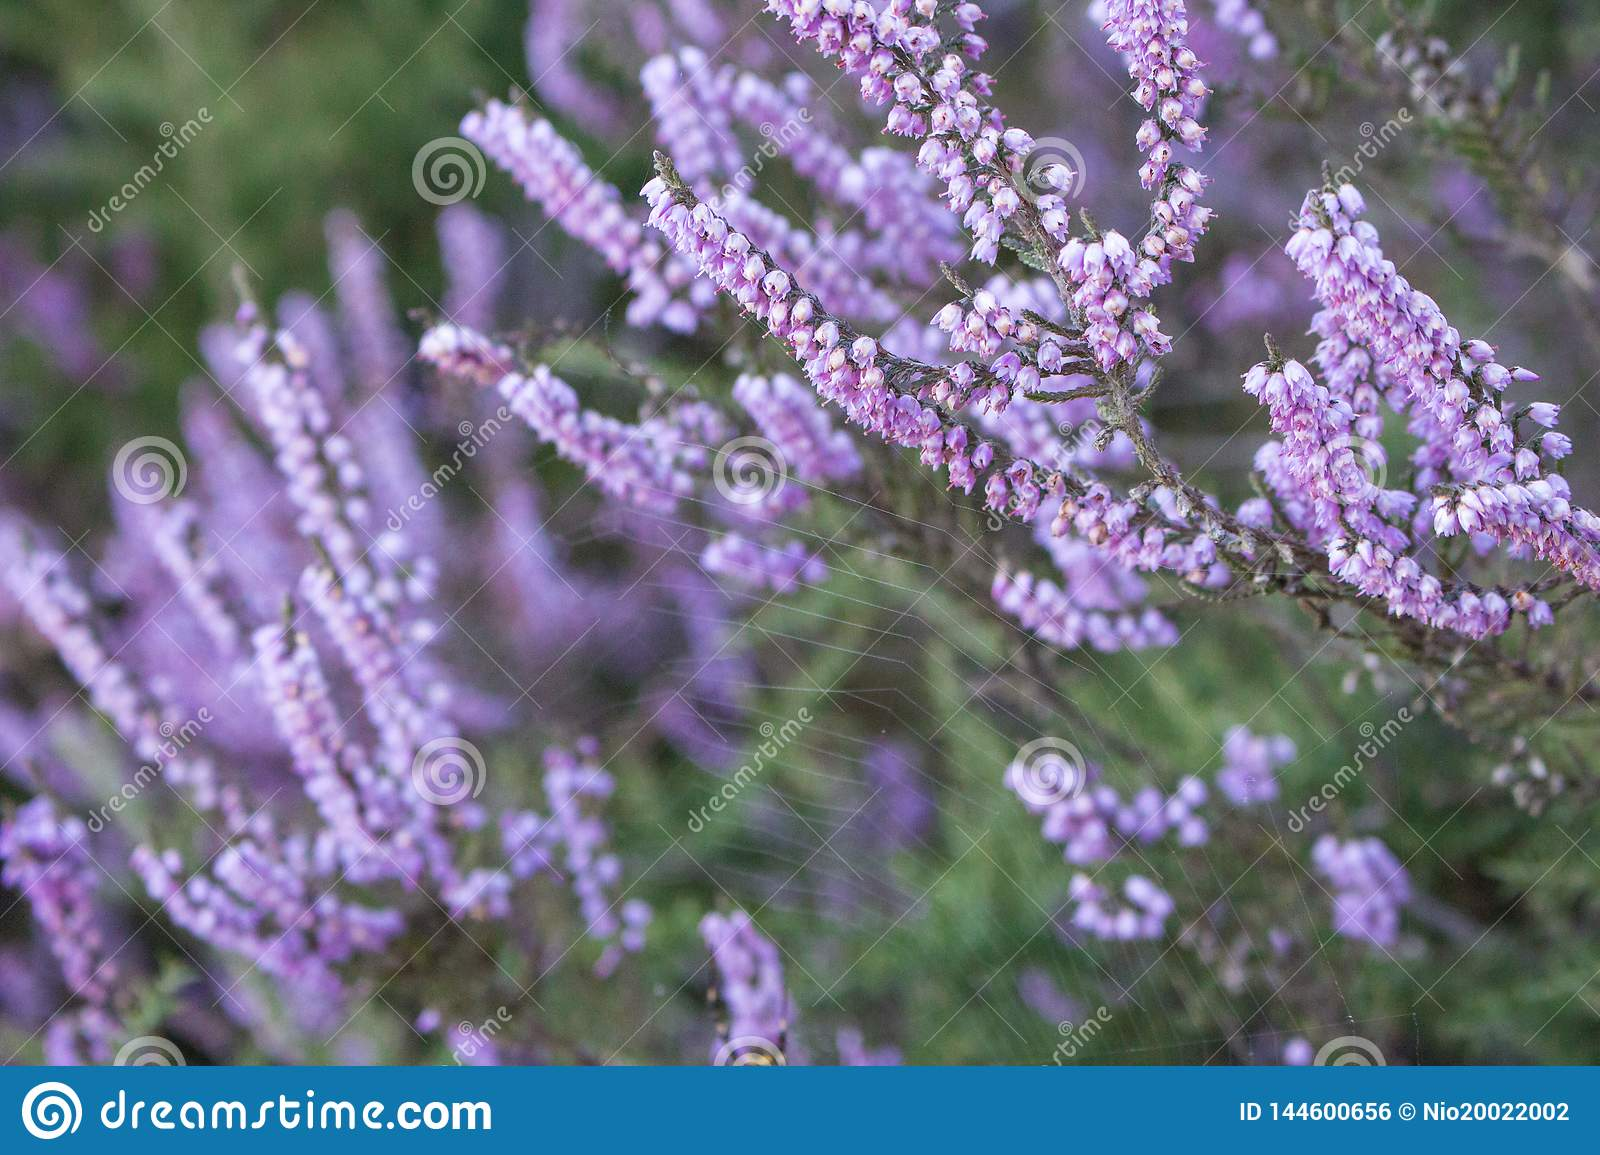 Purple flowers in grass closeup. Spting nature background. Violet and pink flowers. Blooming aroma flowers. Spring meadow.